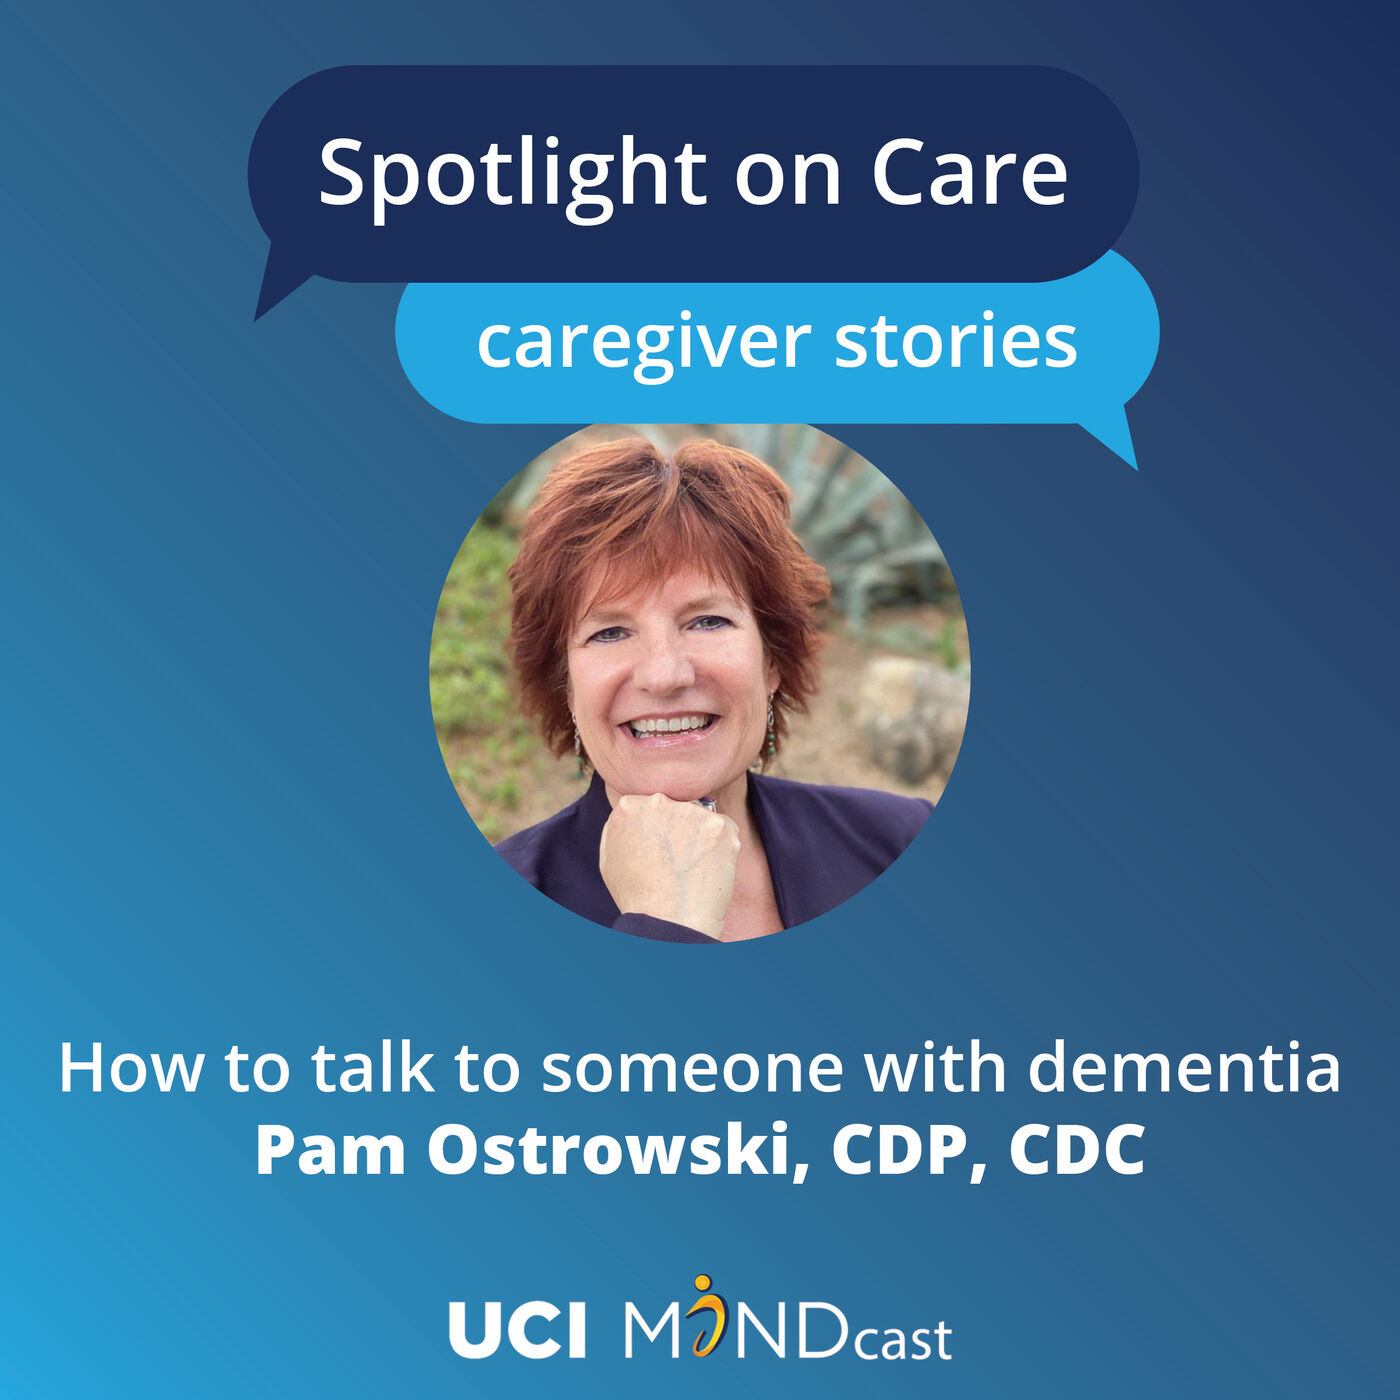 How to Talk to Someone with Dementia with Pam Ostrowski